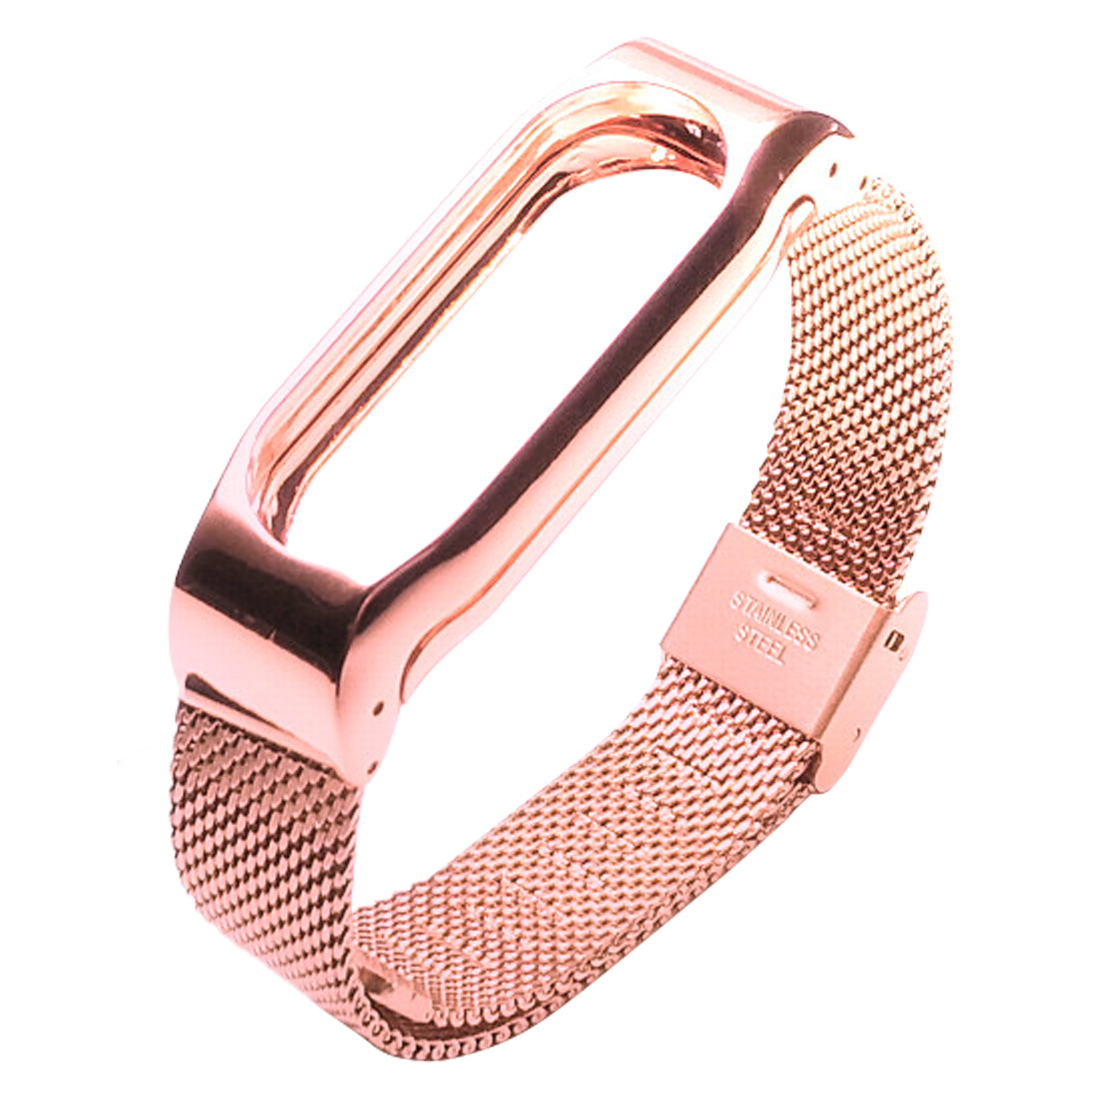 Metal Strap For Xiaomi Mi Band 2 Wristband Screwless Straps Bracelet For Mi Band 2 Magnetic Automatic Buckle Wristbands